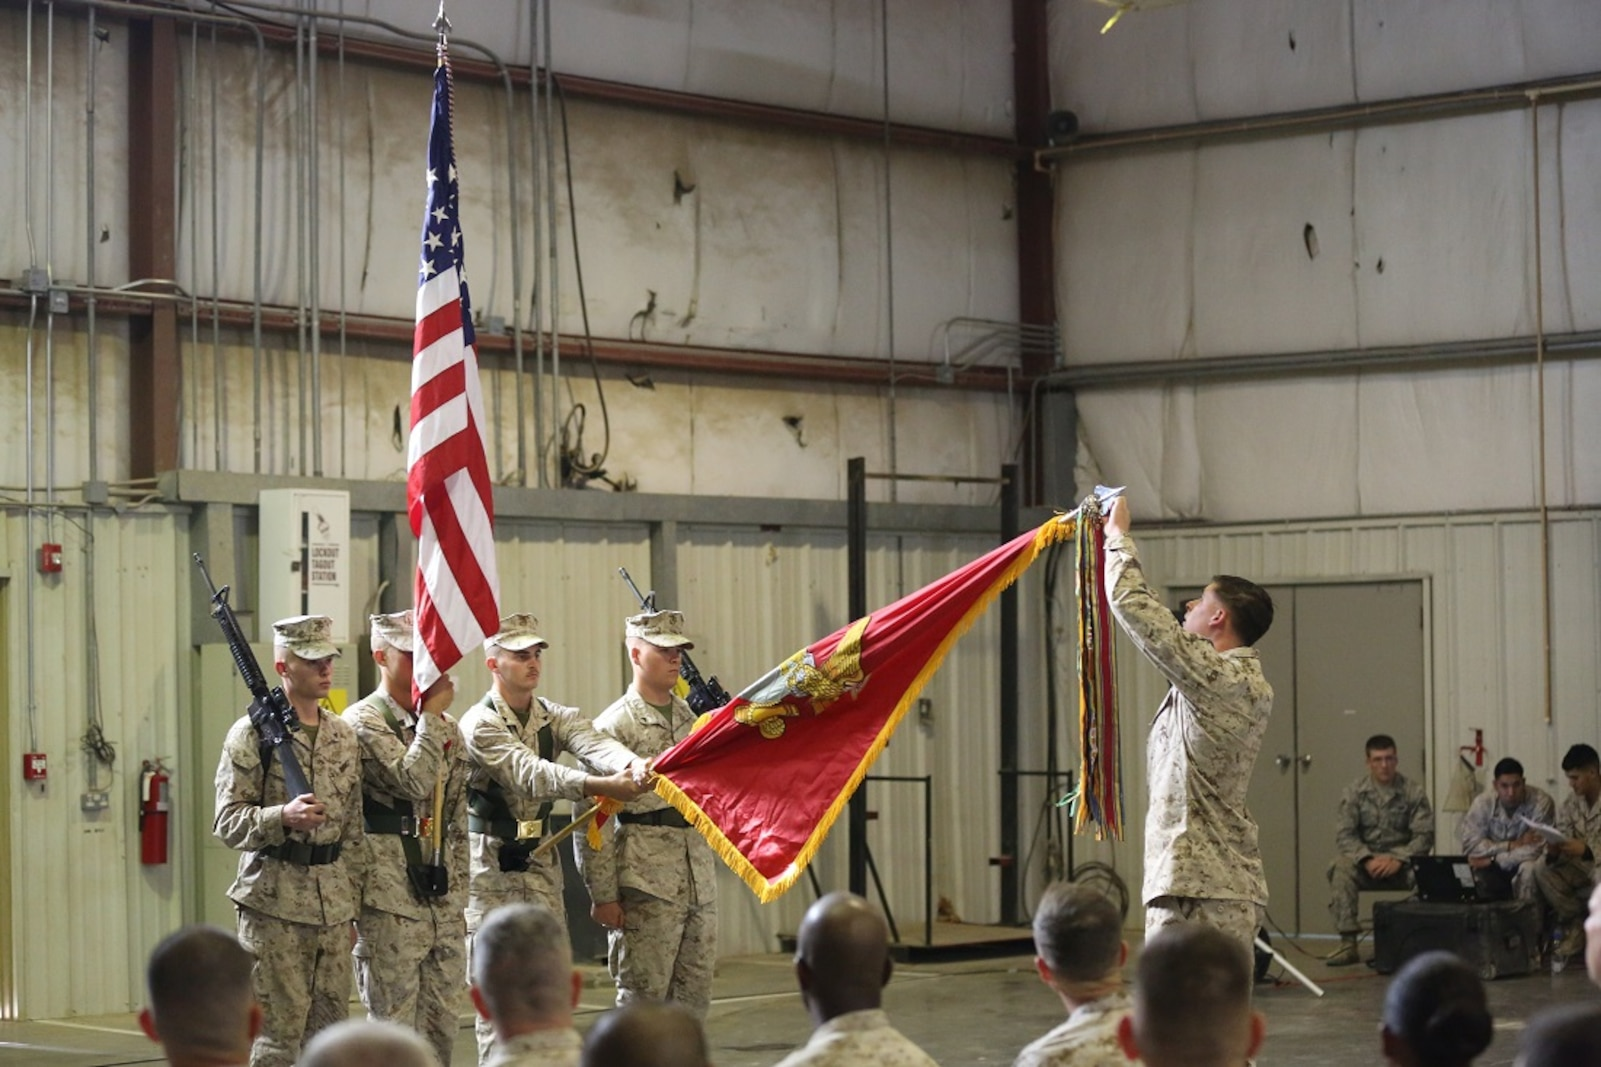 One by one, Marines with Special Purpose Marine Air Ground Task Force-Crisis Response-Central Command place a battle streamer on the Regimental Colors to symbolize the 7th Marine Regiment's unit awards during the 98th anniversary ceremony, held in an undisclosed location in Southwest Asia, Aug. 15, 2015. The 7th Marine Regiment Headquarters and 3rd Battalion, 7th Marines are currently deployed with the SPMAGTF-CR-CC and took time to remember the regiment's storied history and rededicate themselves to their current work with Operation Inherent Resolve.